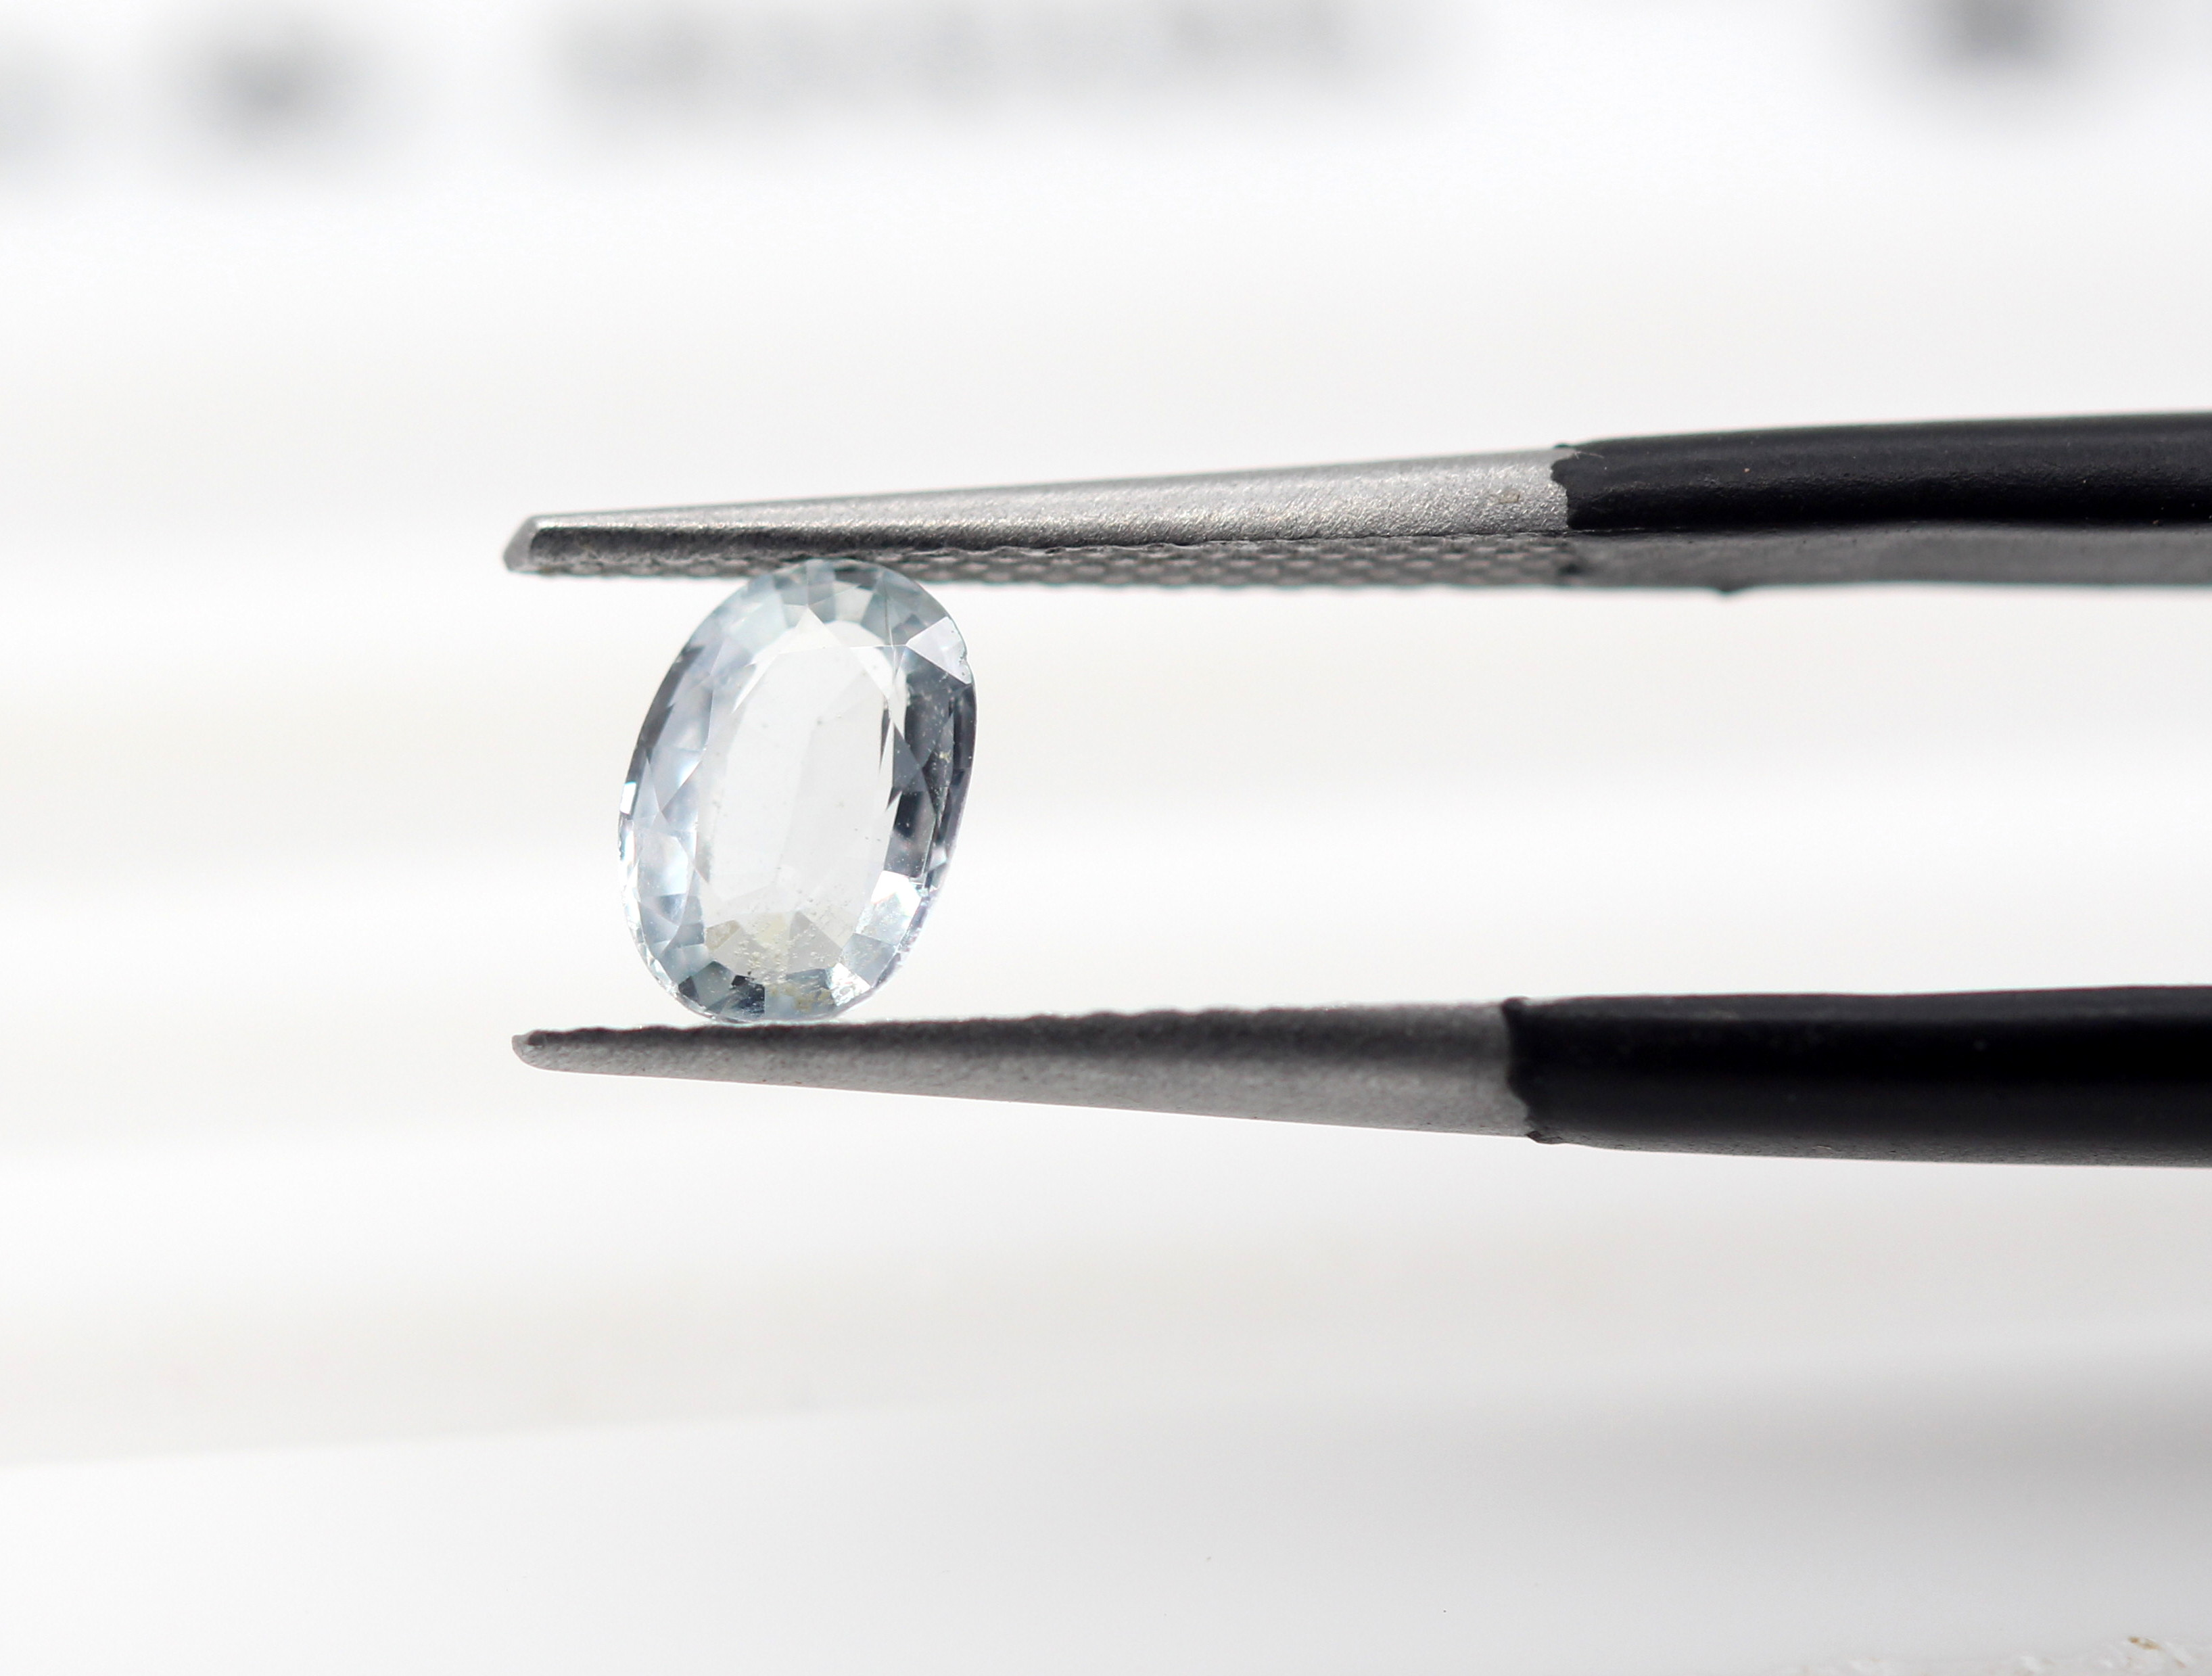 0.72 Ct White Sapphire Natural Gemstone Off White Transparent Color Ceylon Certified